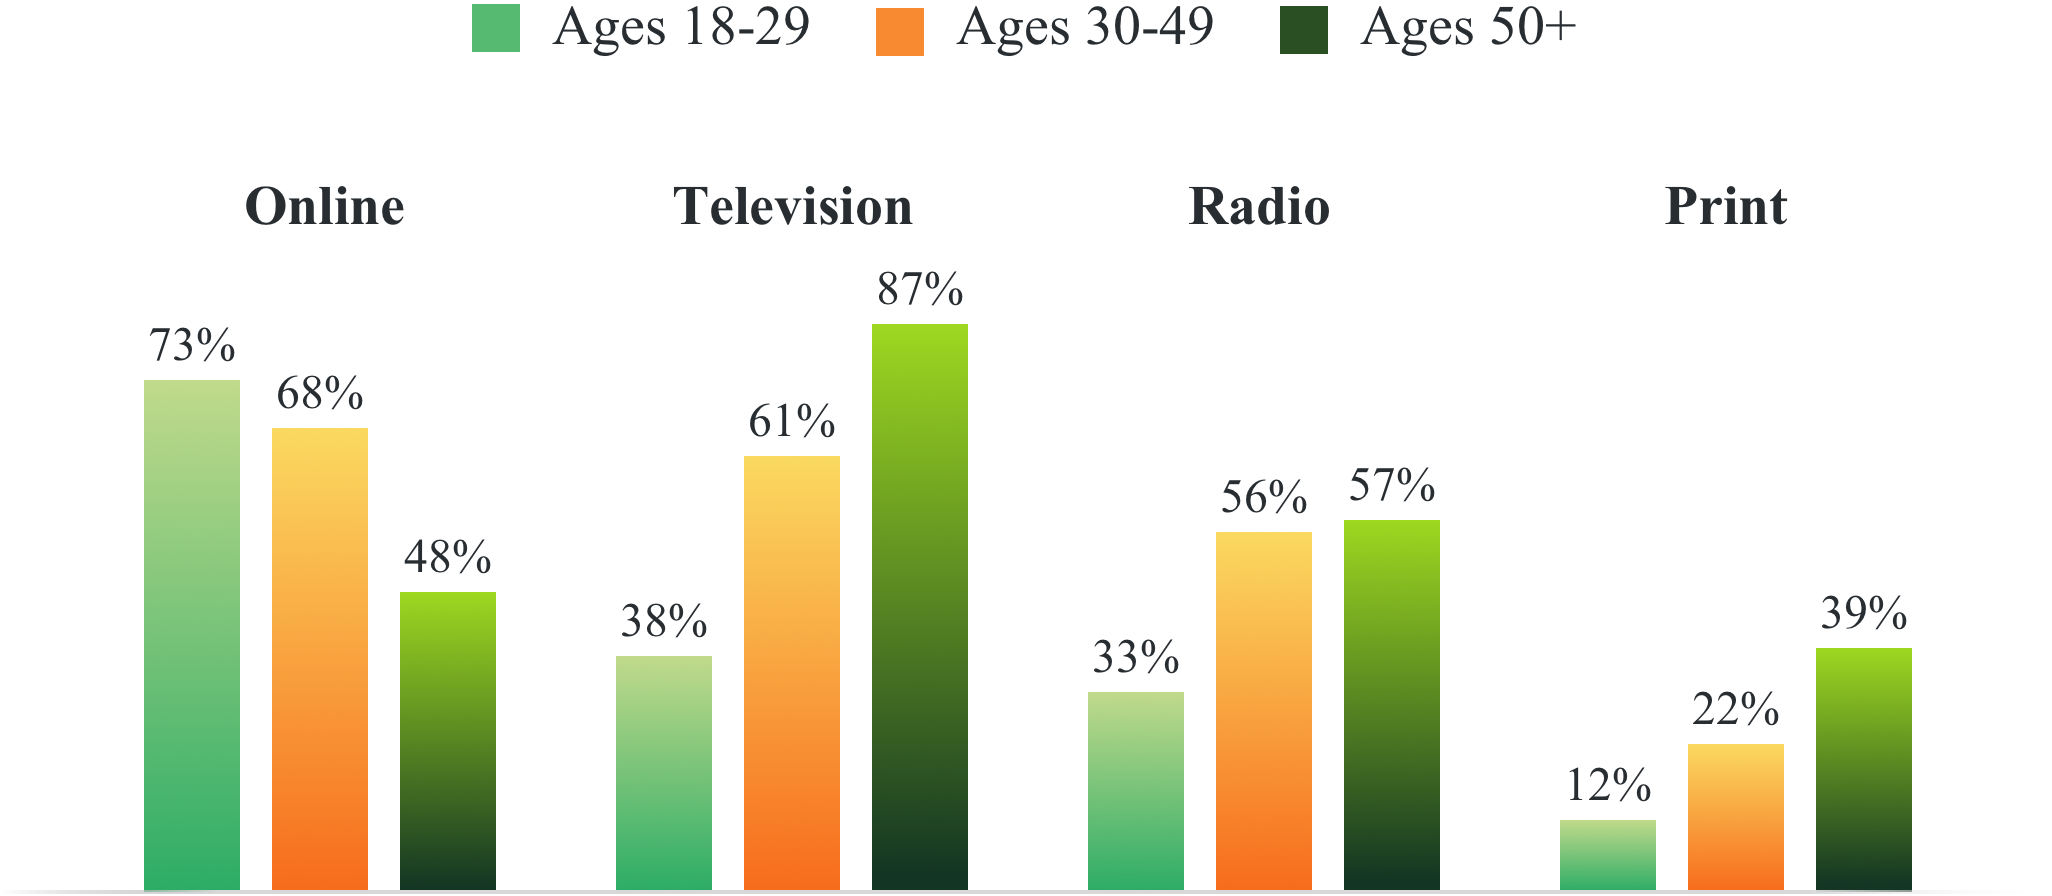 Preferred media channels by age